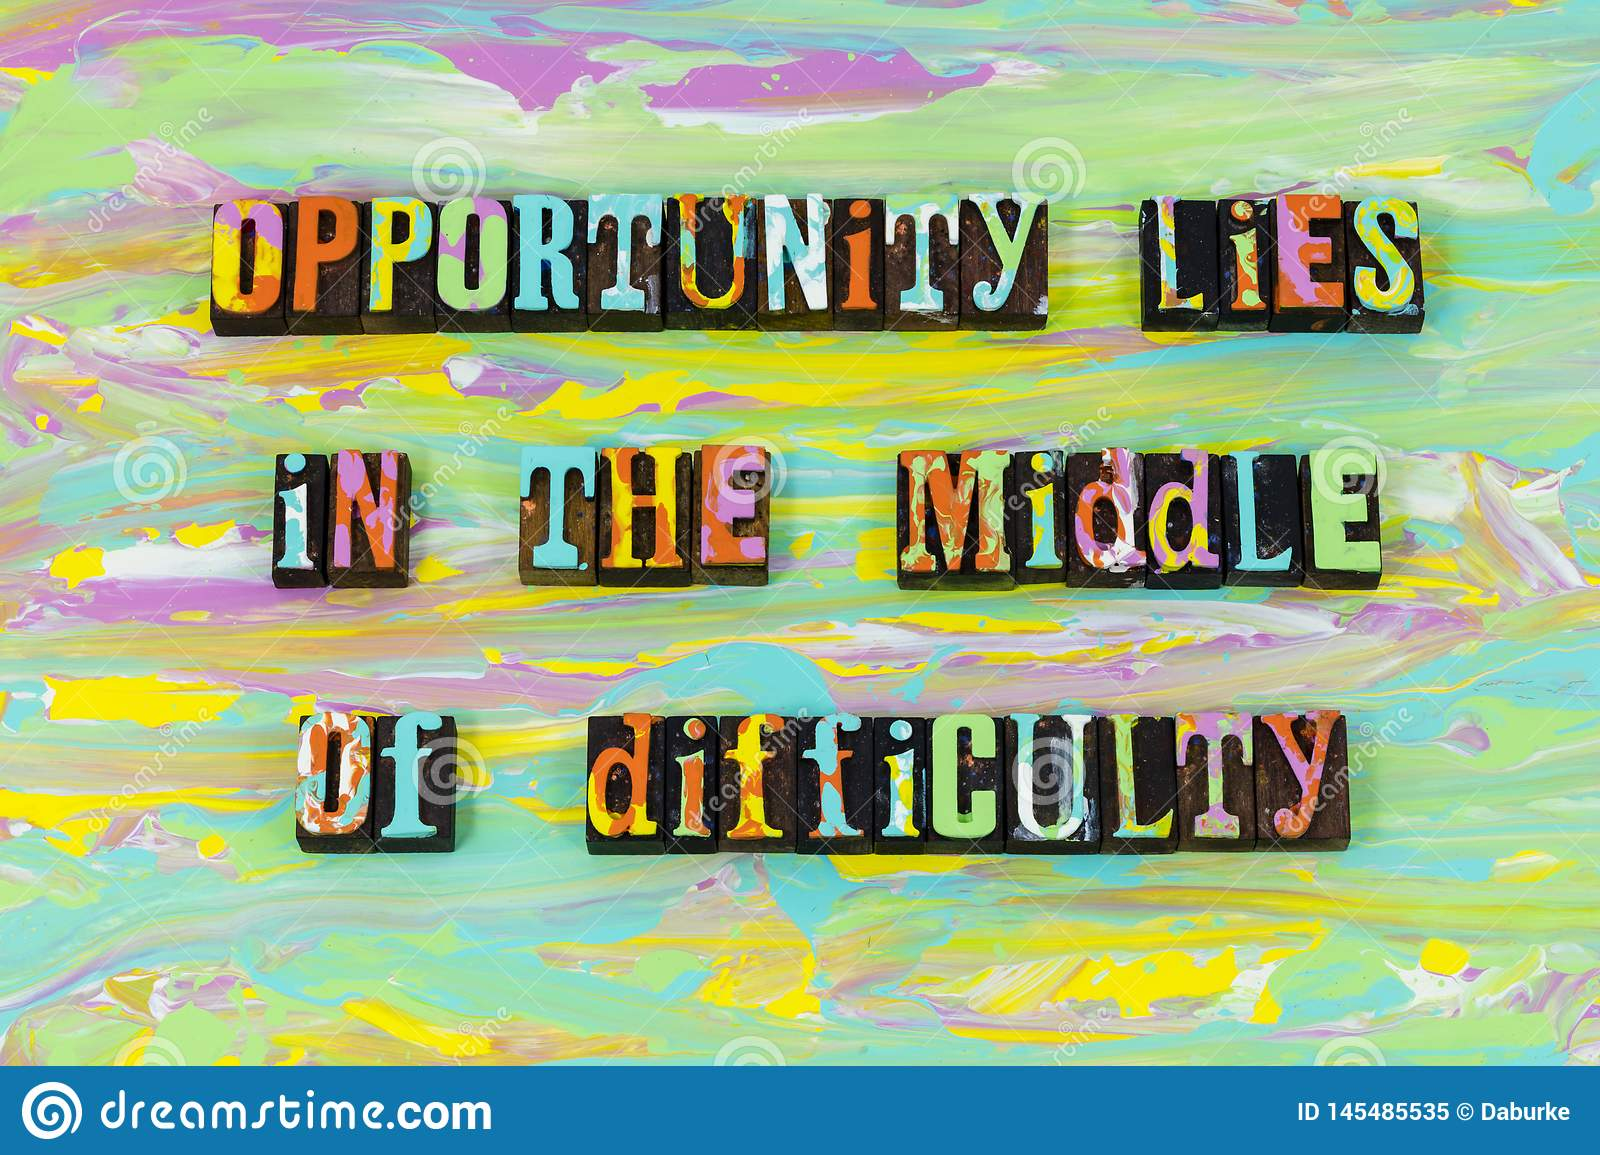 Opportunity Middle Difficulty Challenge Hard Work Typography